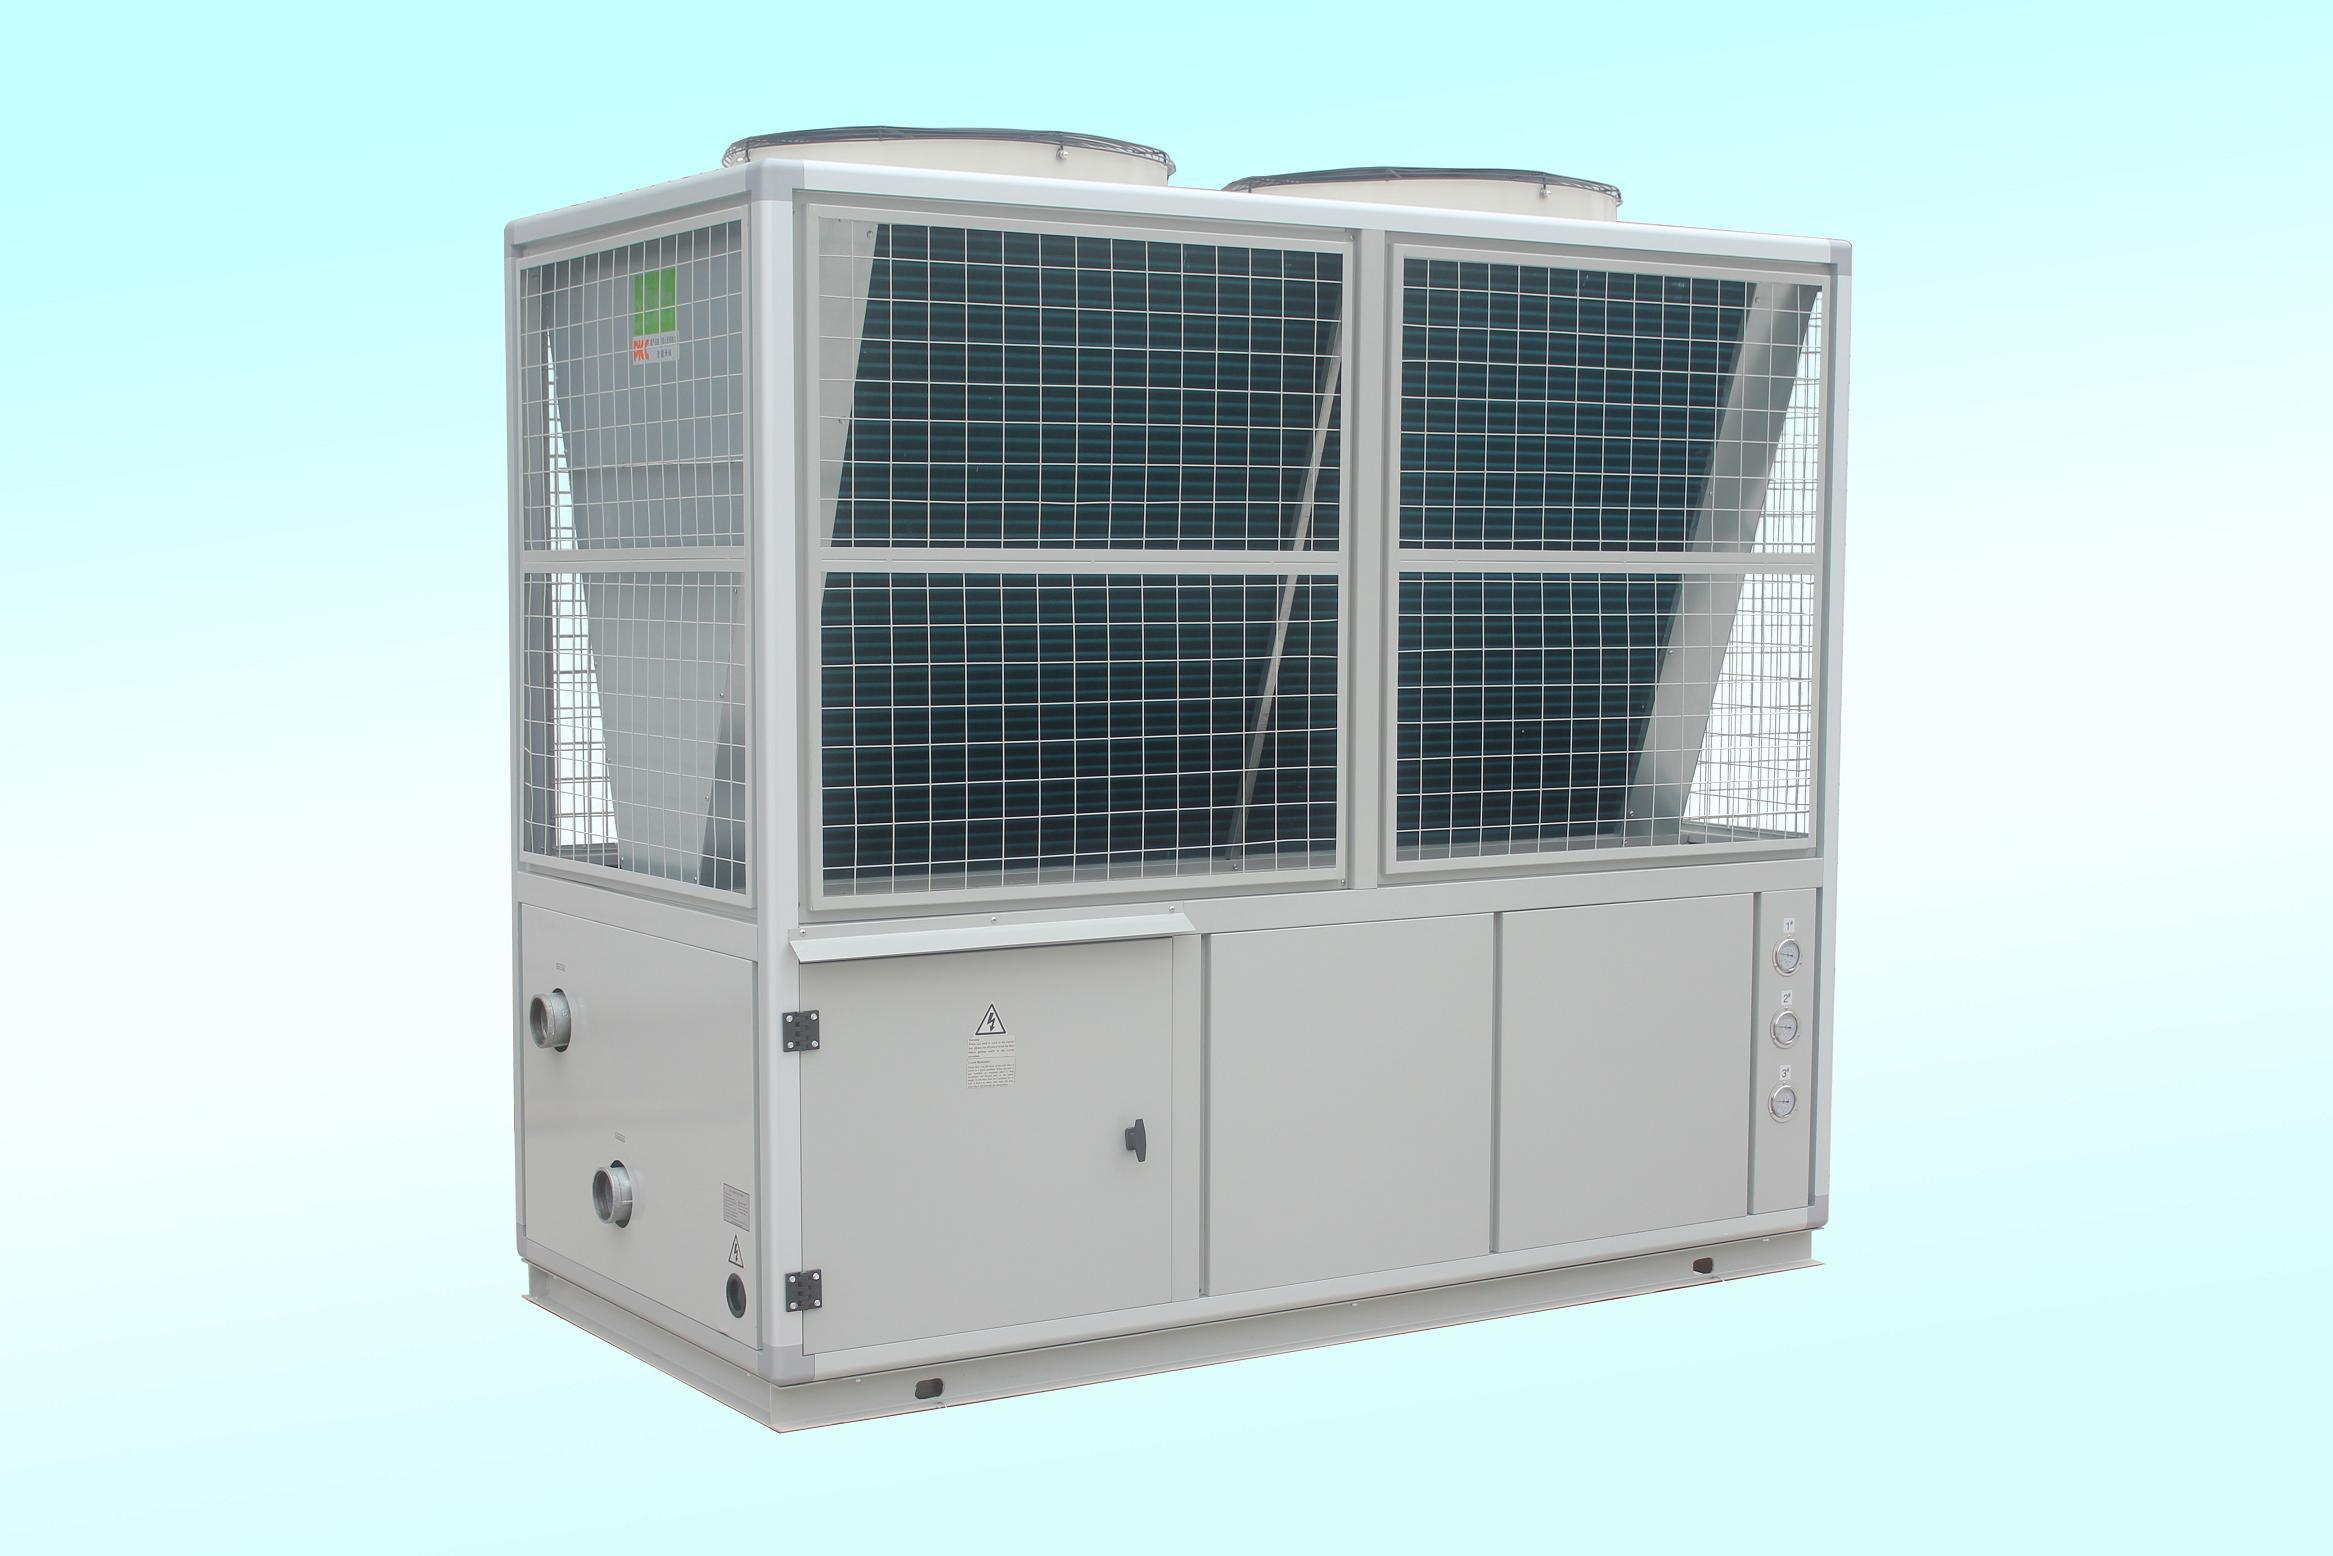 Nombre: industrial water chiller 1.jpeg #3C8F8F